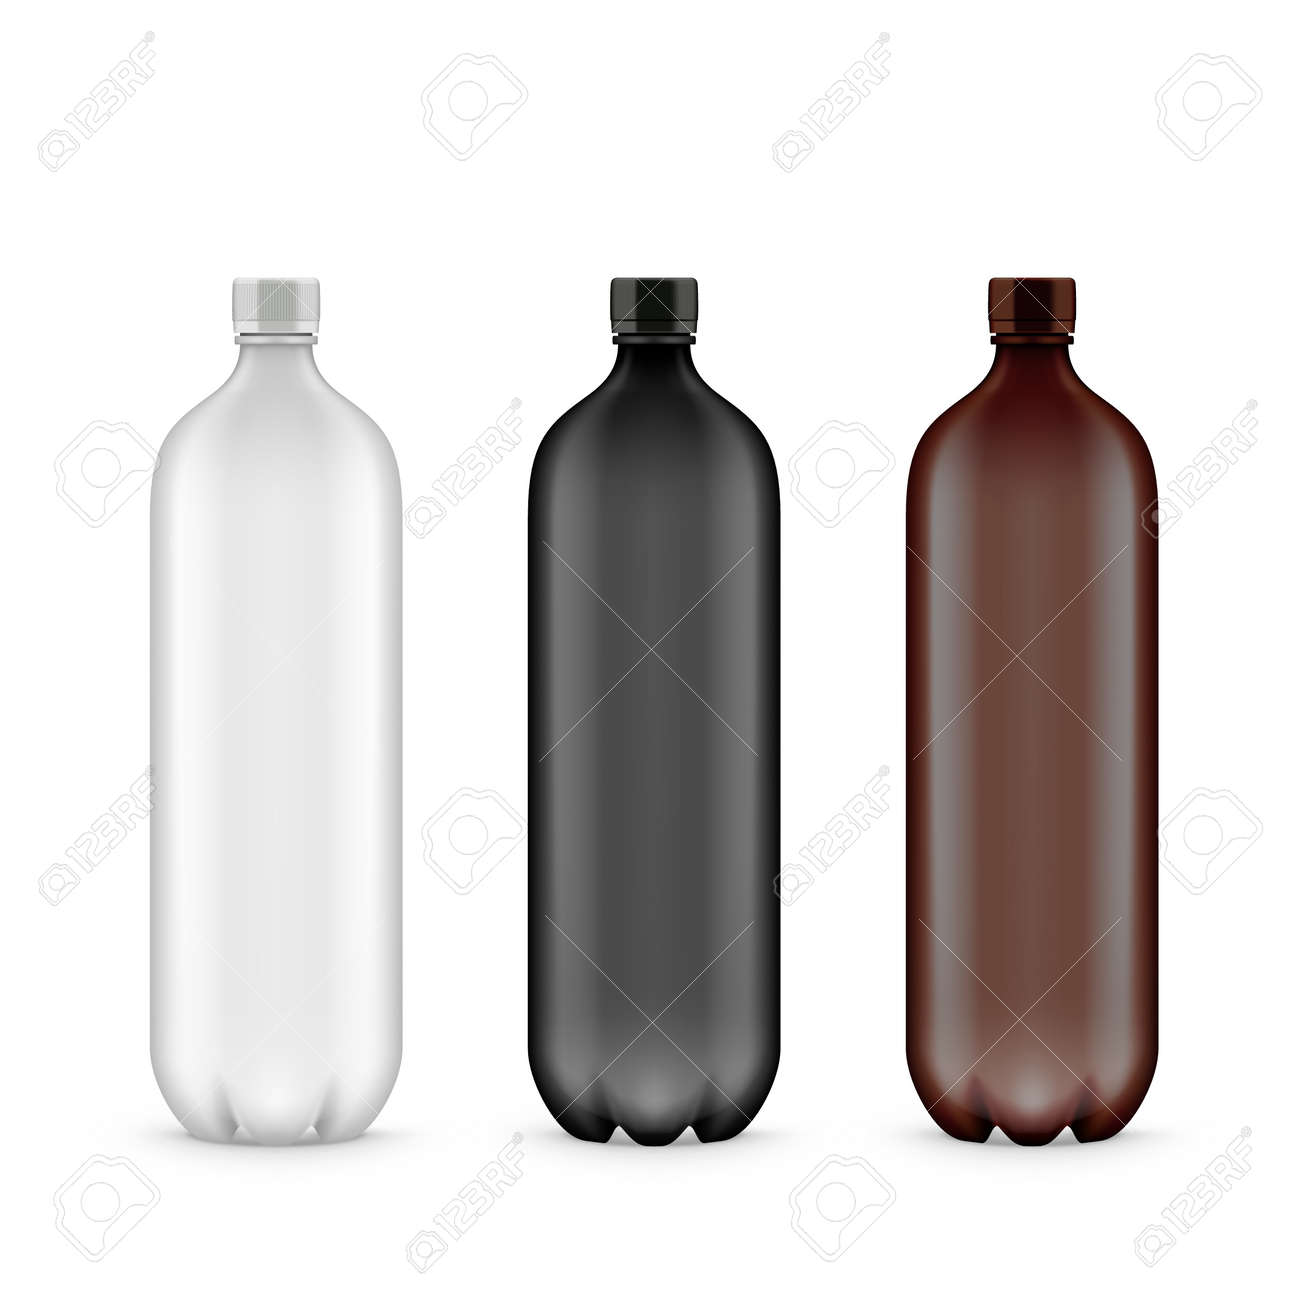 White, Black And Brown Plastic PET Bottle - 169413630